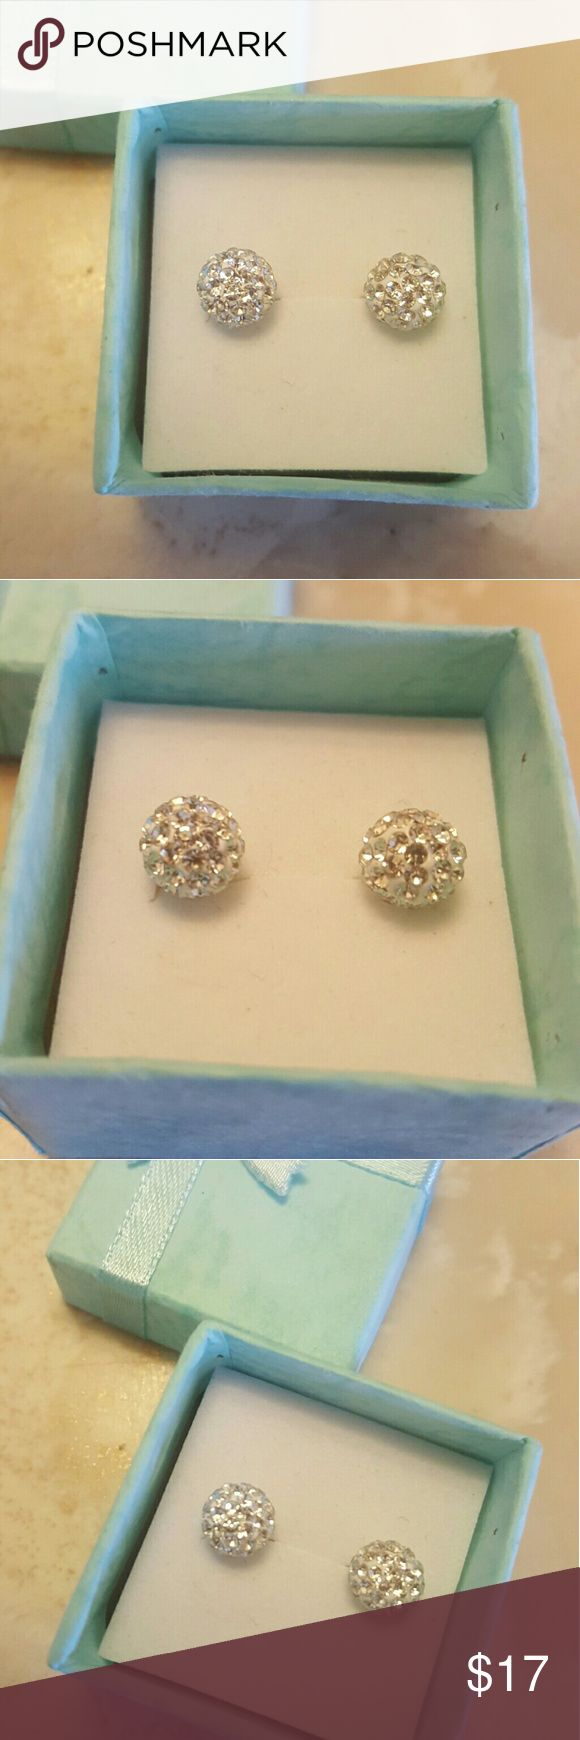 Crystal ball clear stud earrings Size 10mm New 100% brand new  2 pairs  Austrian Crystal clear  Sterling silver plated   ################################ Crystal are placed by hand thus creating variances ever between each piece  ********************************************* THANKS FOR SHOPPING FOR ME Jewelry Earrings